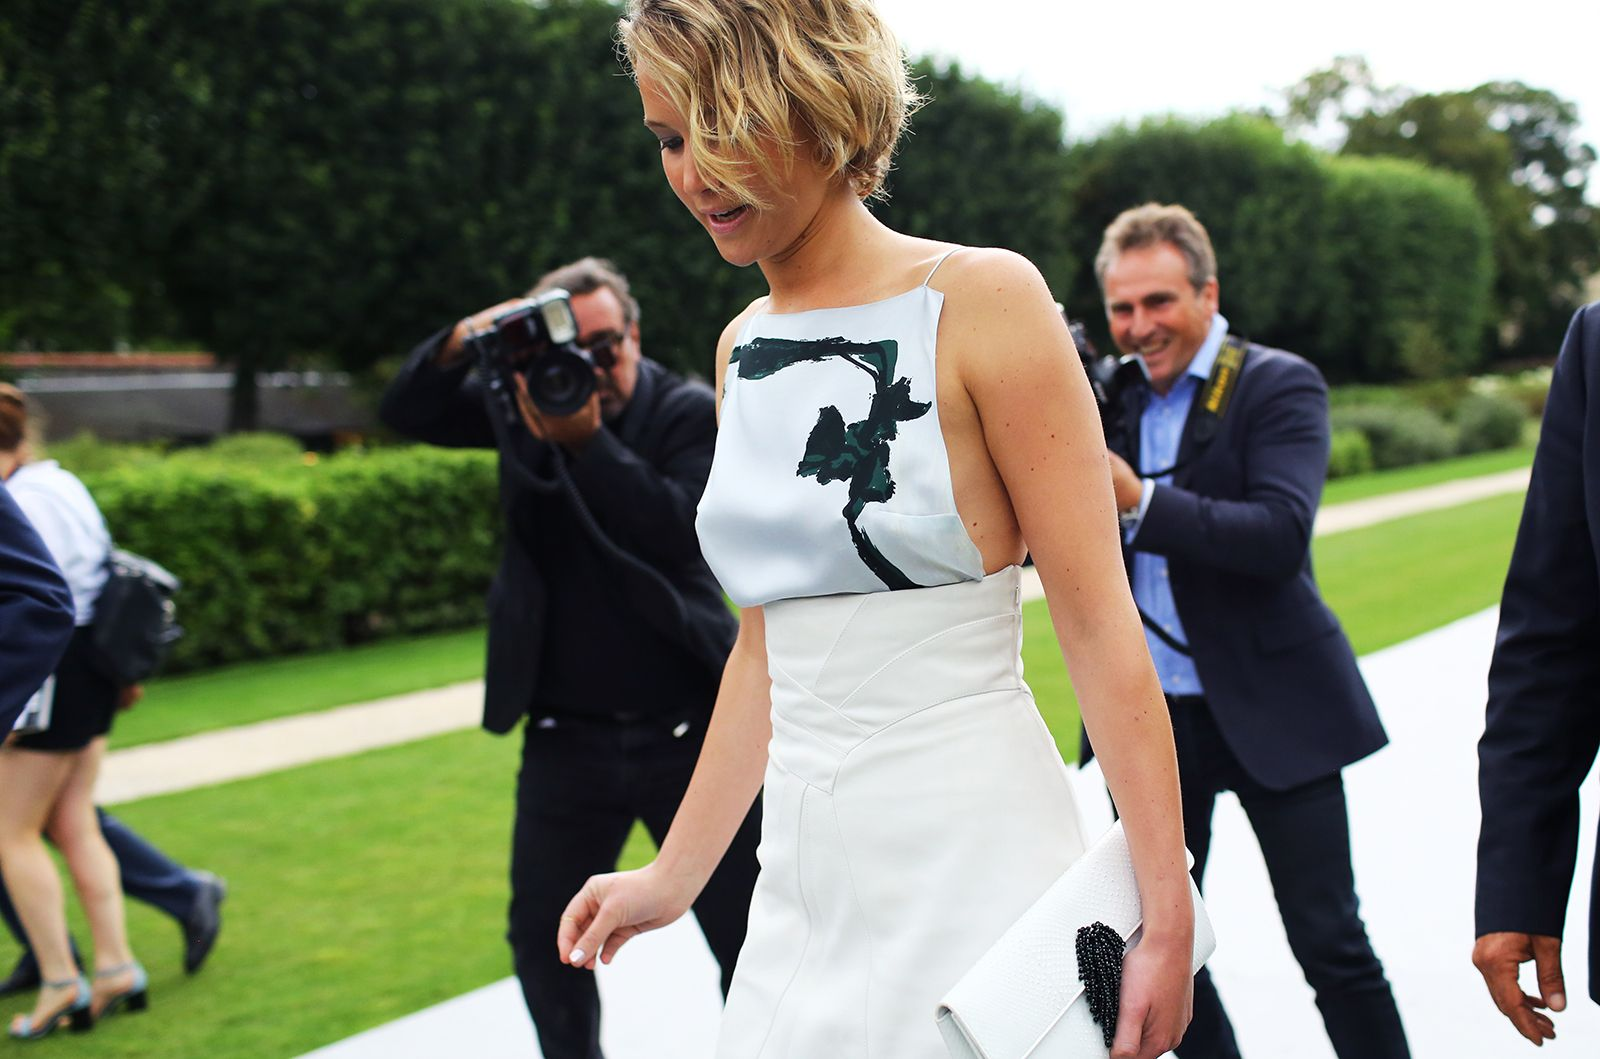 Jennifer Lawrence in Dior @ Paris Fashion Week - love this outfit!